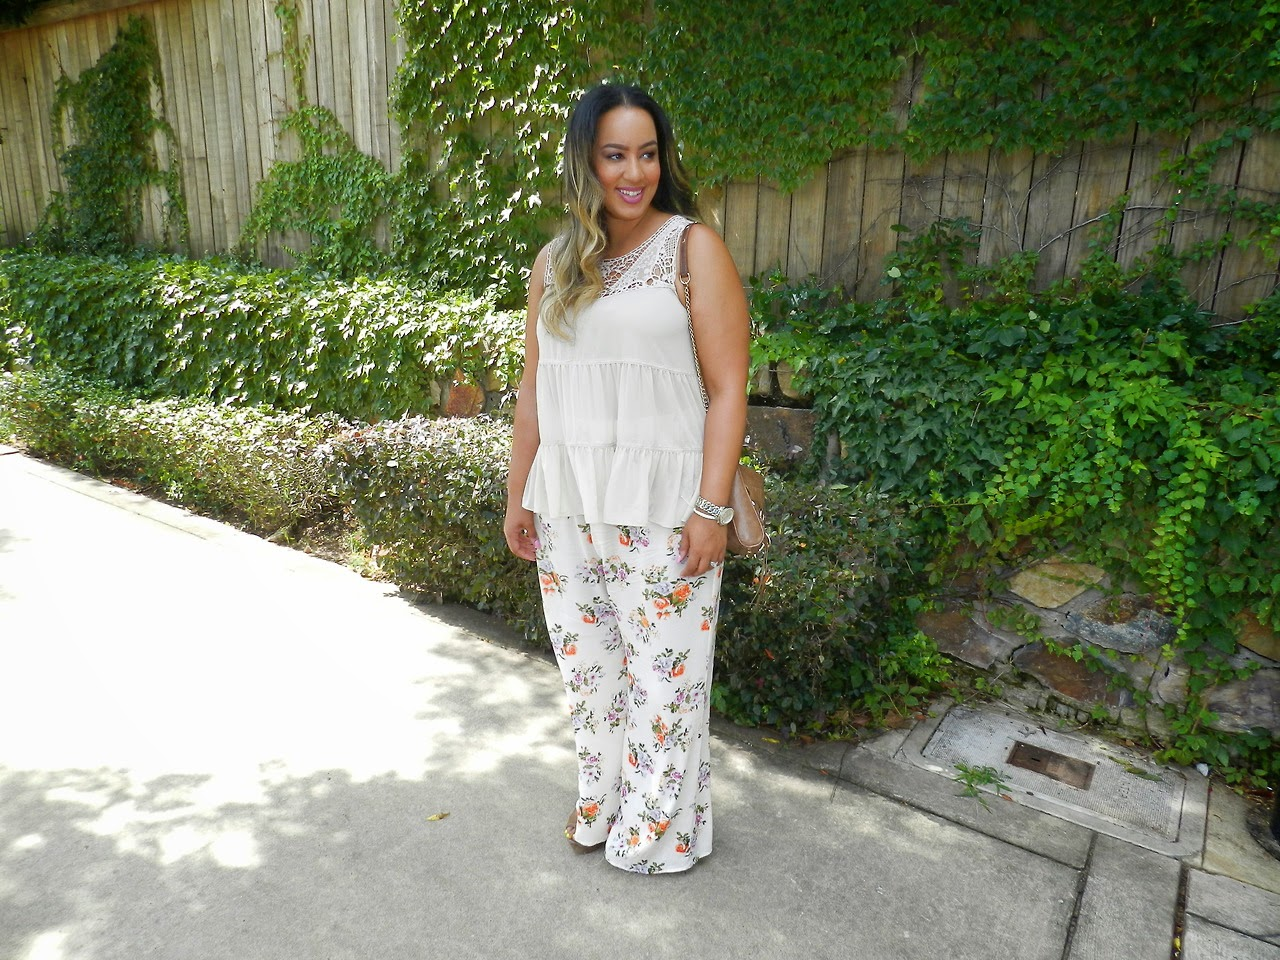 Boho Clothing Plus Size Pants Dress to impress in boho pants